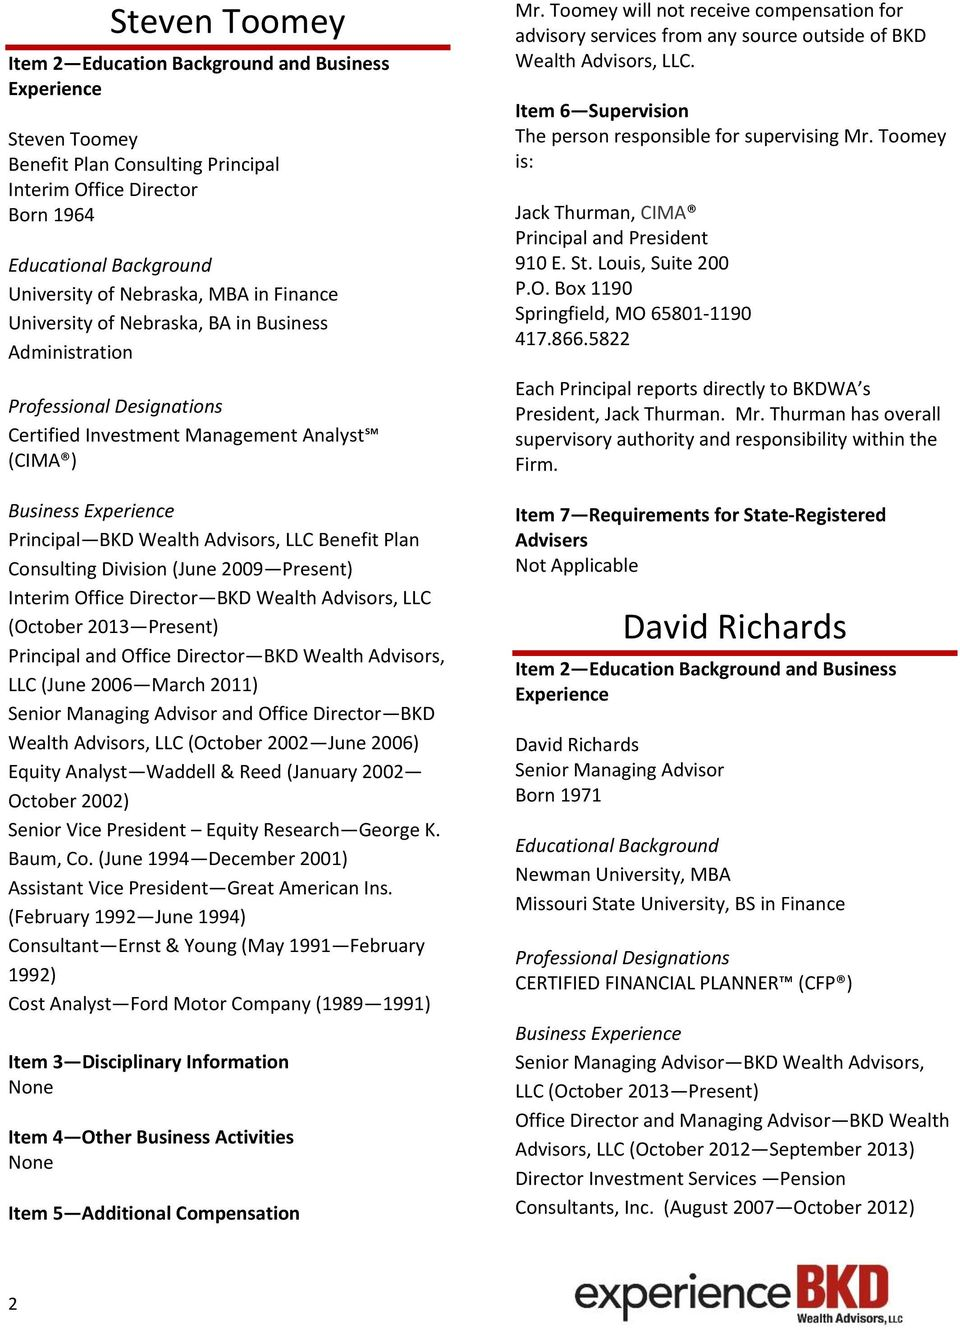 Present) Principal and Office Director BKD Wealth Advisors, LLC (June 2006 March 2011) Senior Managing Advisor and Office Director BKD Wealth Advisors, LLC (October 2002 June 2006) Equity Analyst